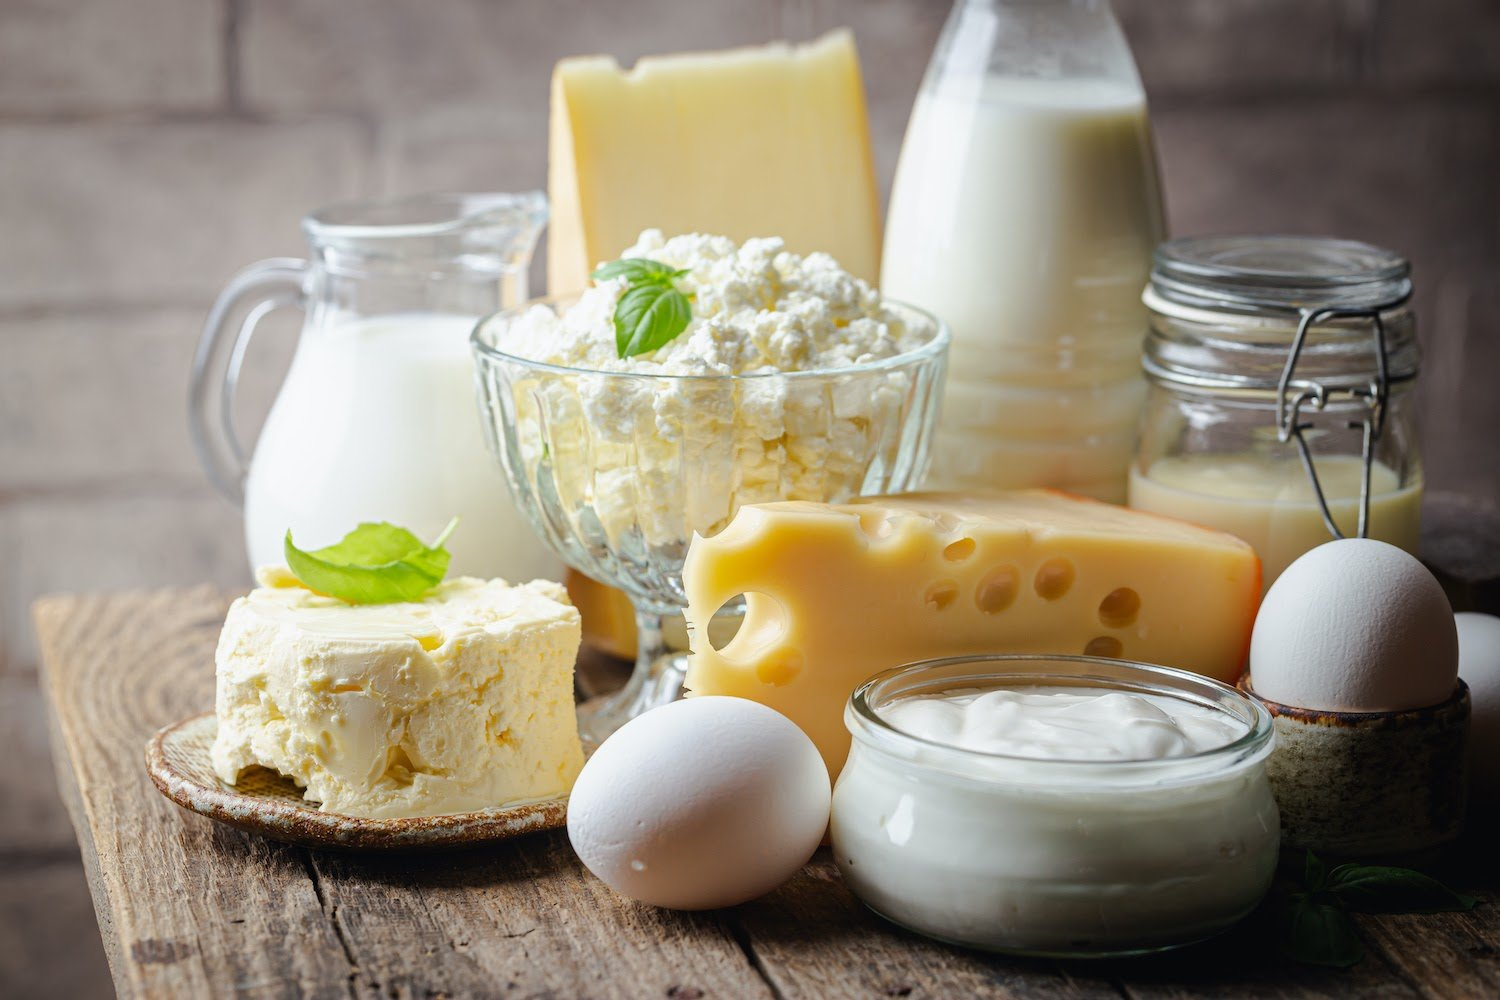 Digestive enzymes for IBS: A variety of dairy products on the table